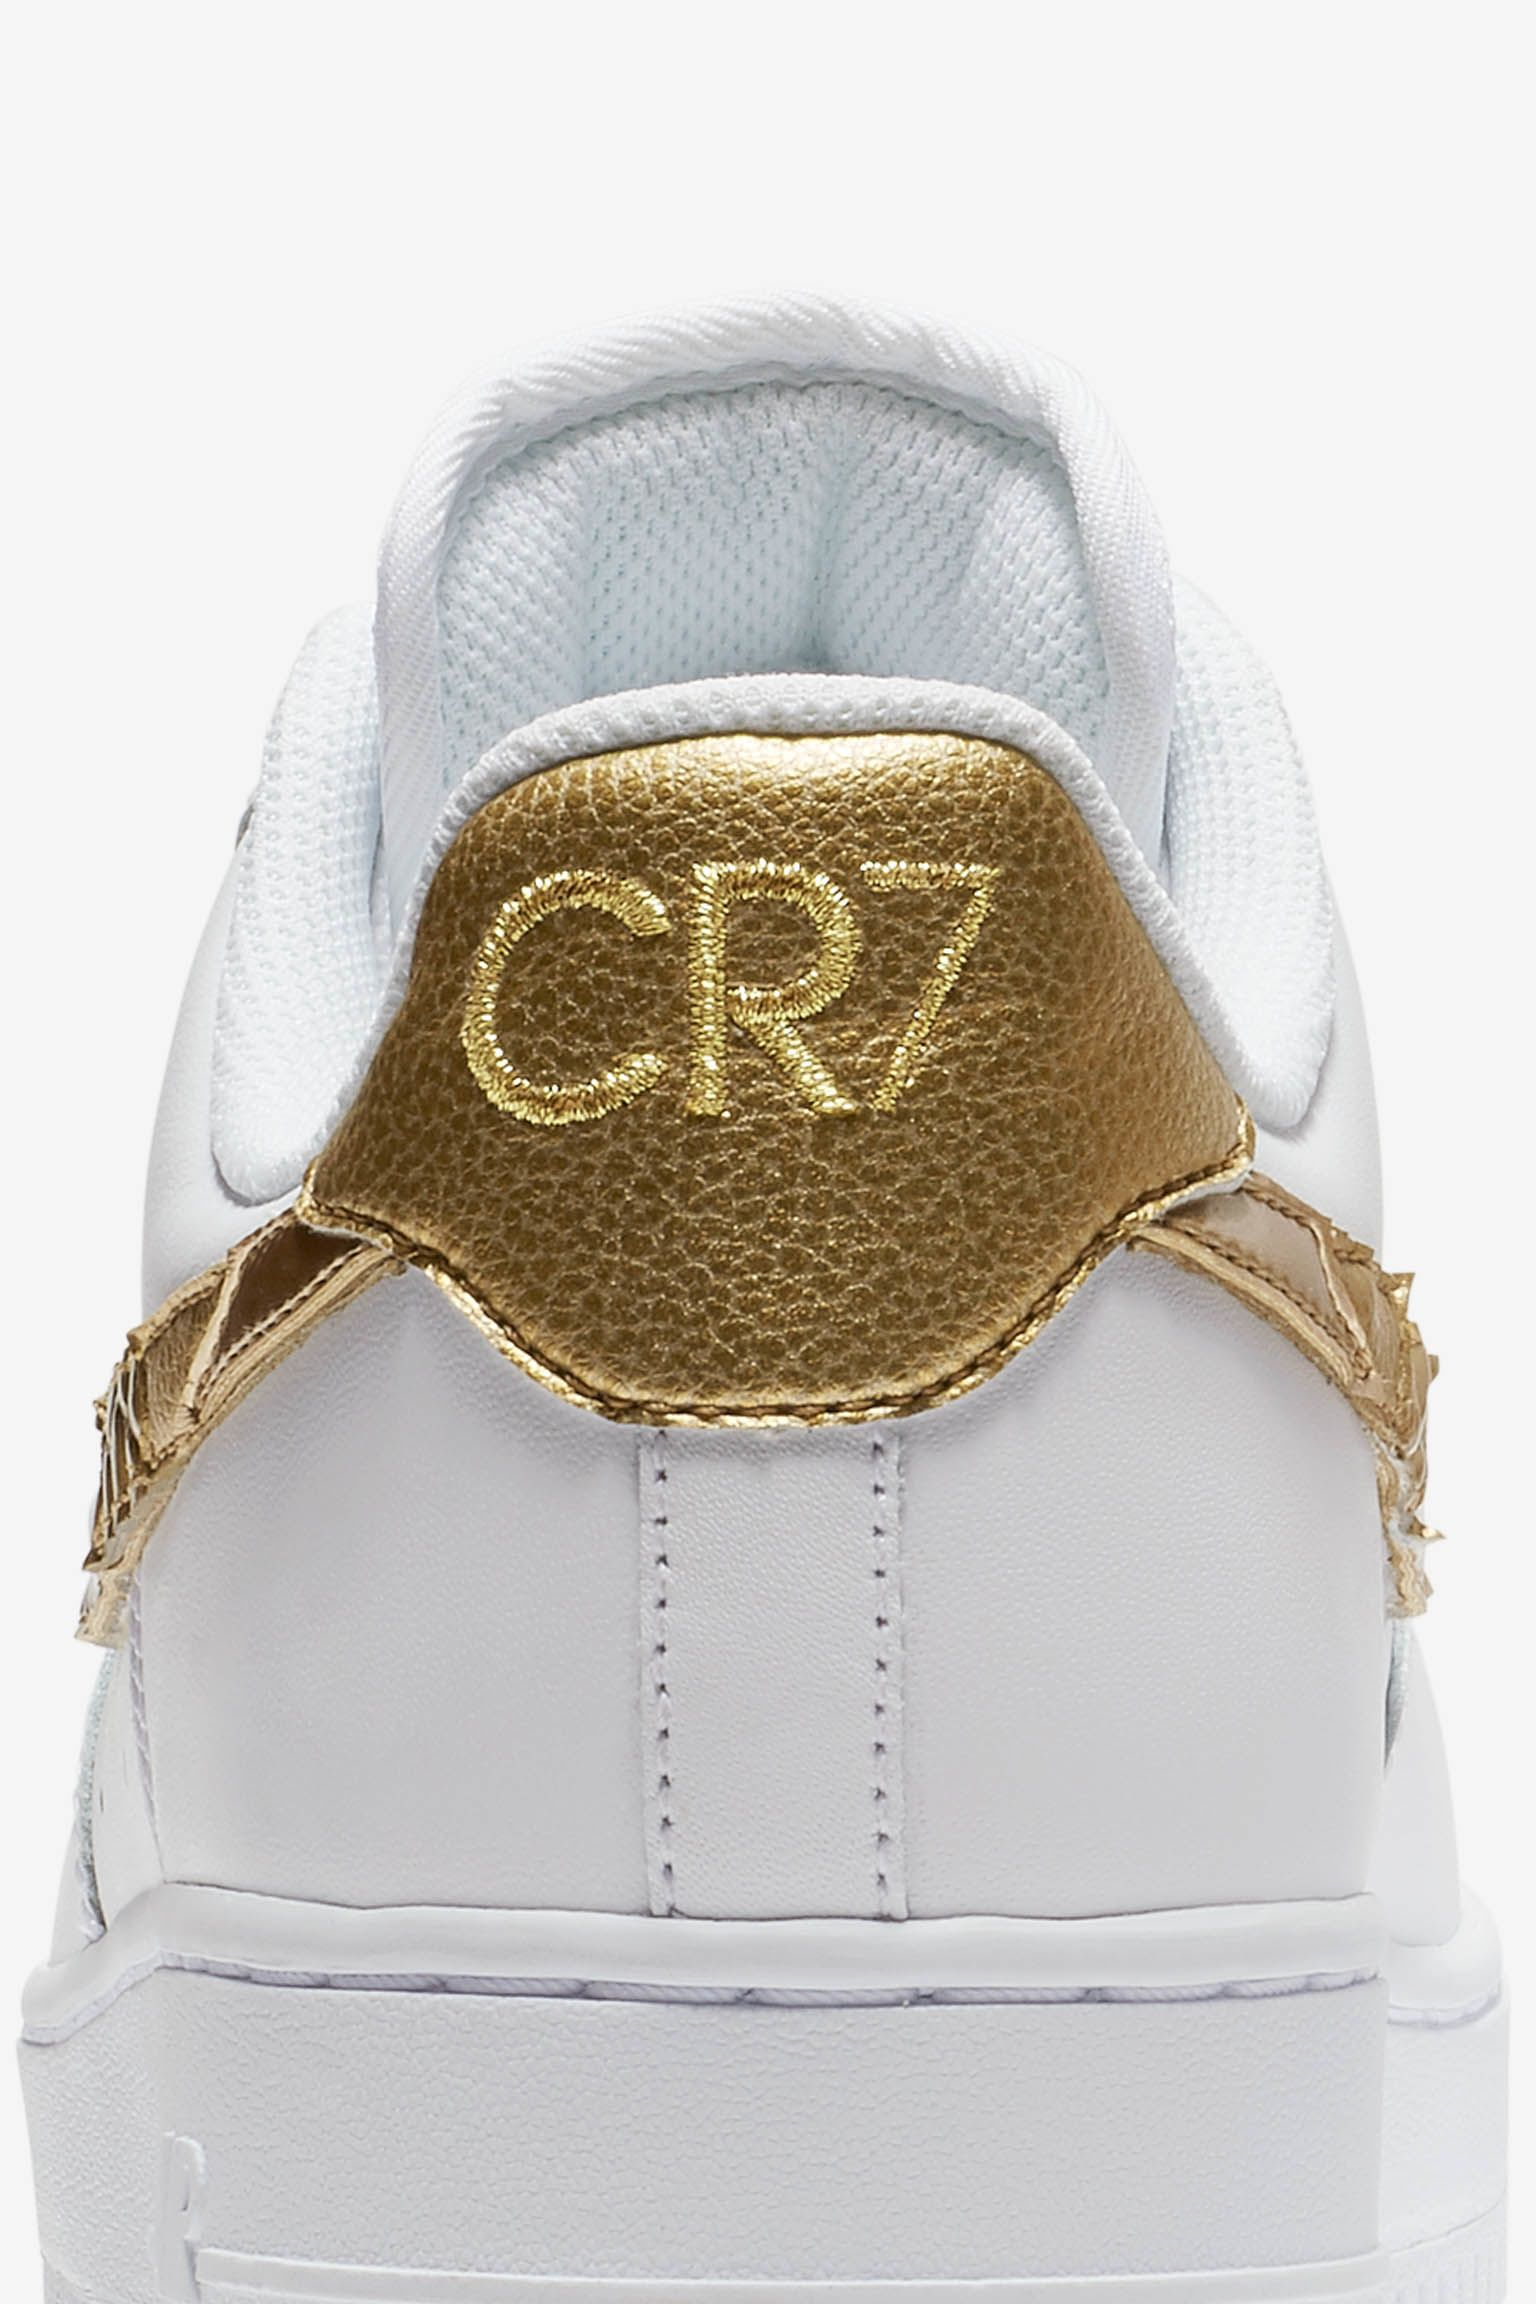 Nike Air Force 1 CR7 'Golden Patchwork' Release Date